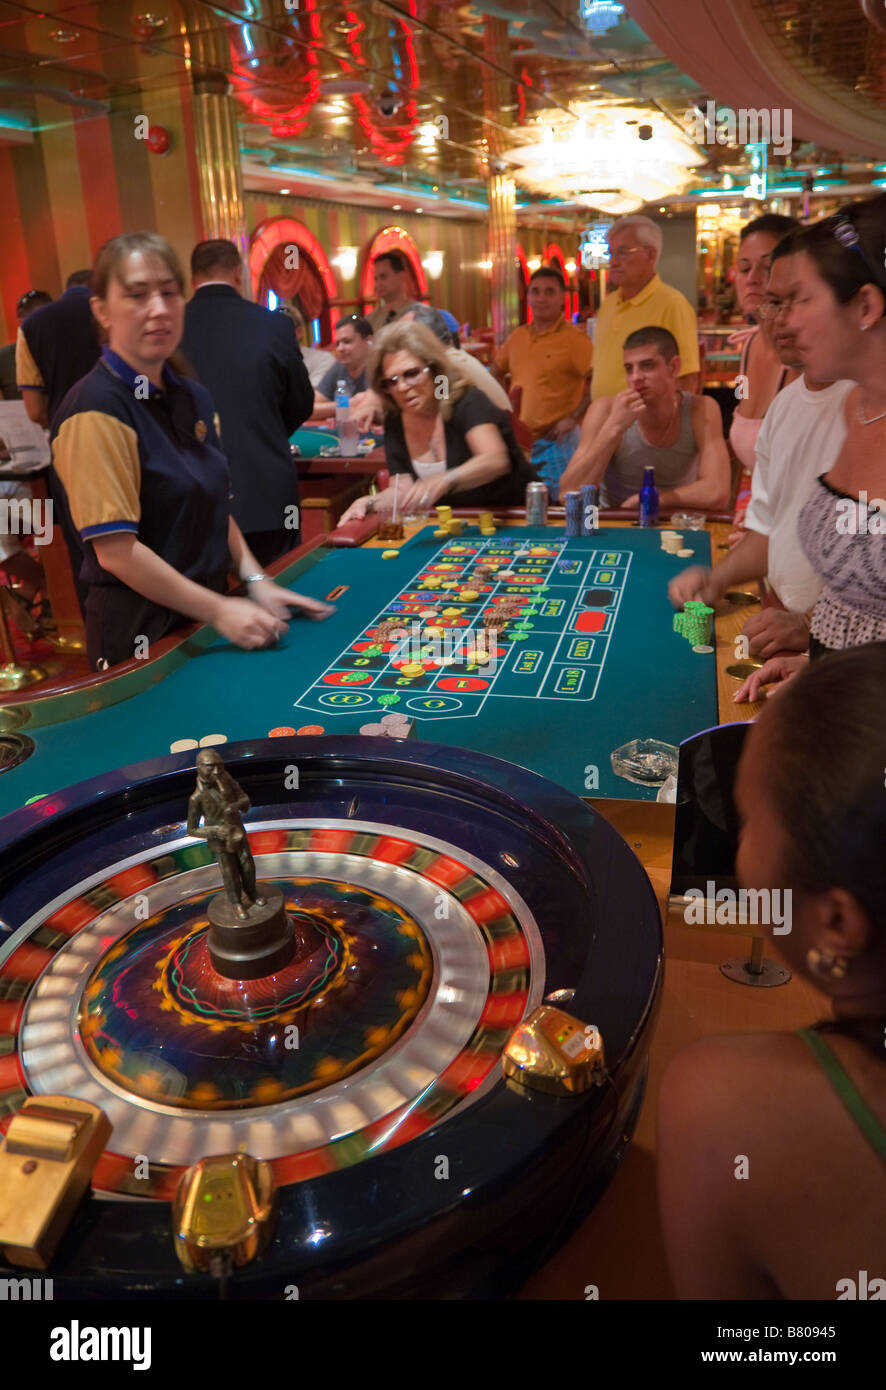 Gamblers playing roulette in casino on Royal Caribbean Navigator of the Seas cruise ship - Stock Image